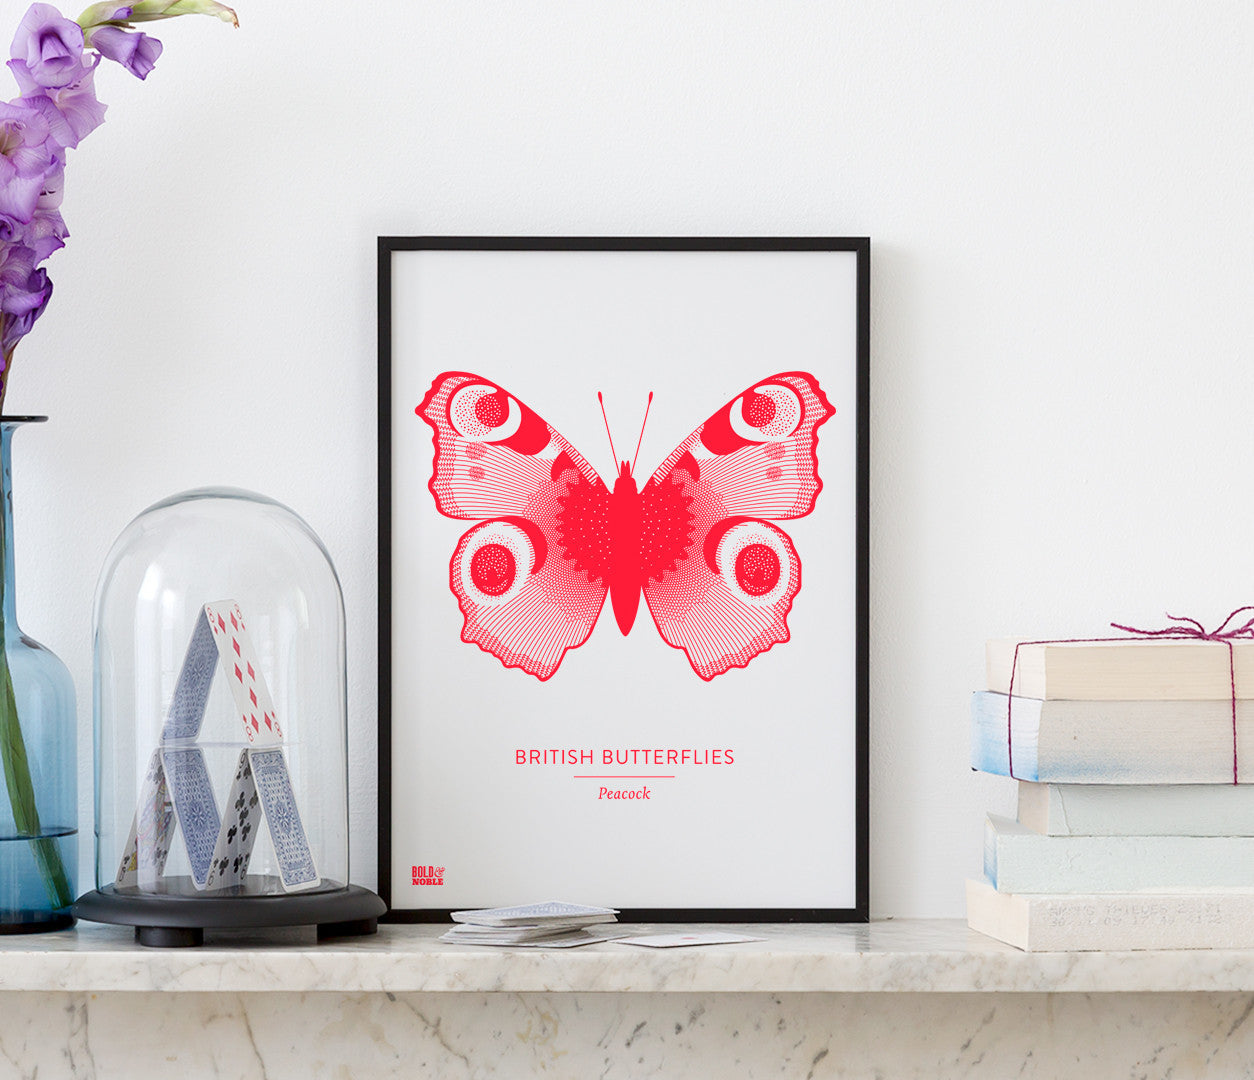 British Butterflies 'Peacock' Print in Neon Red